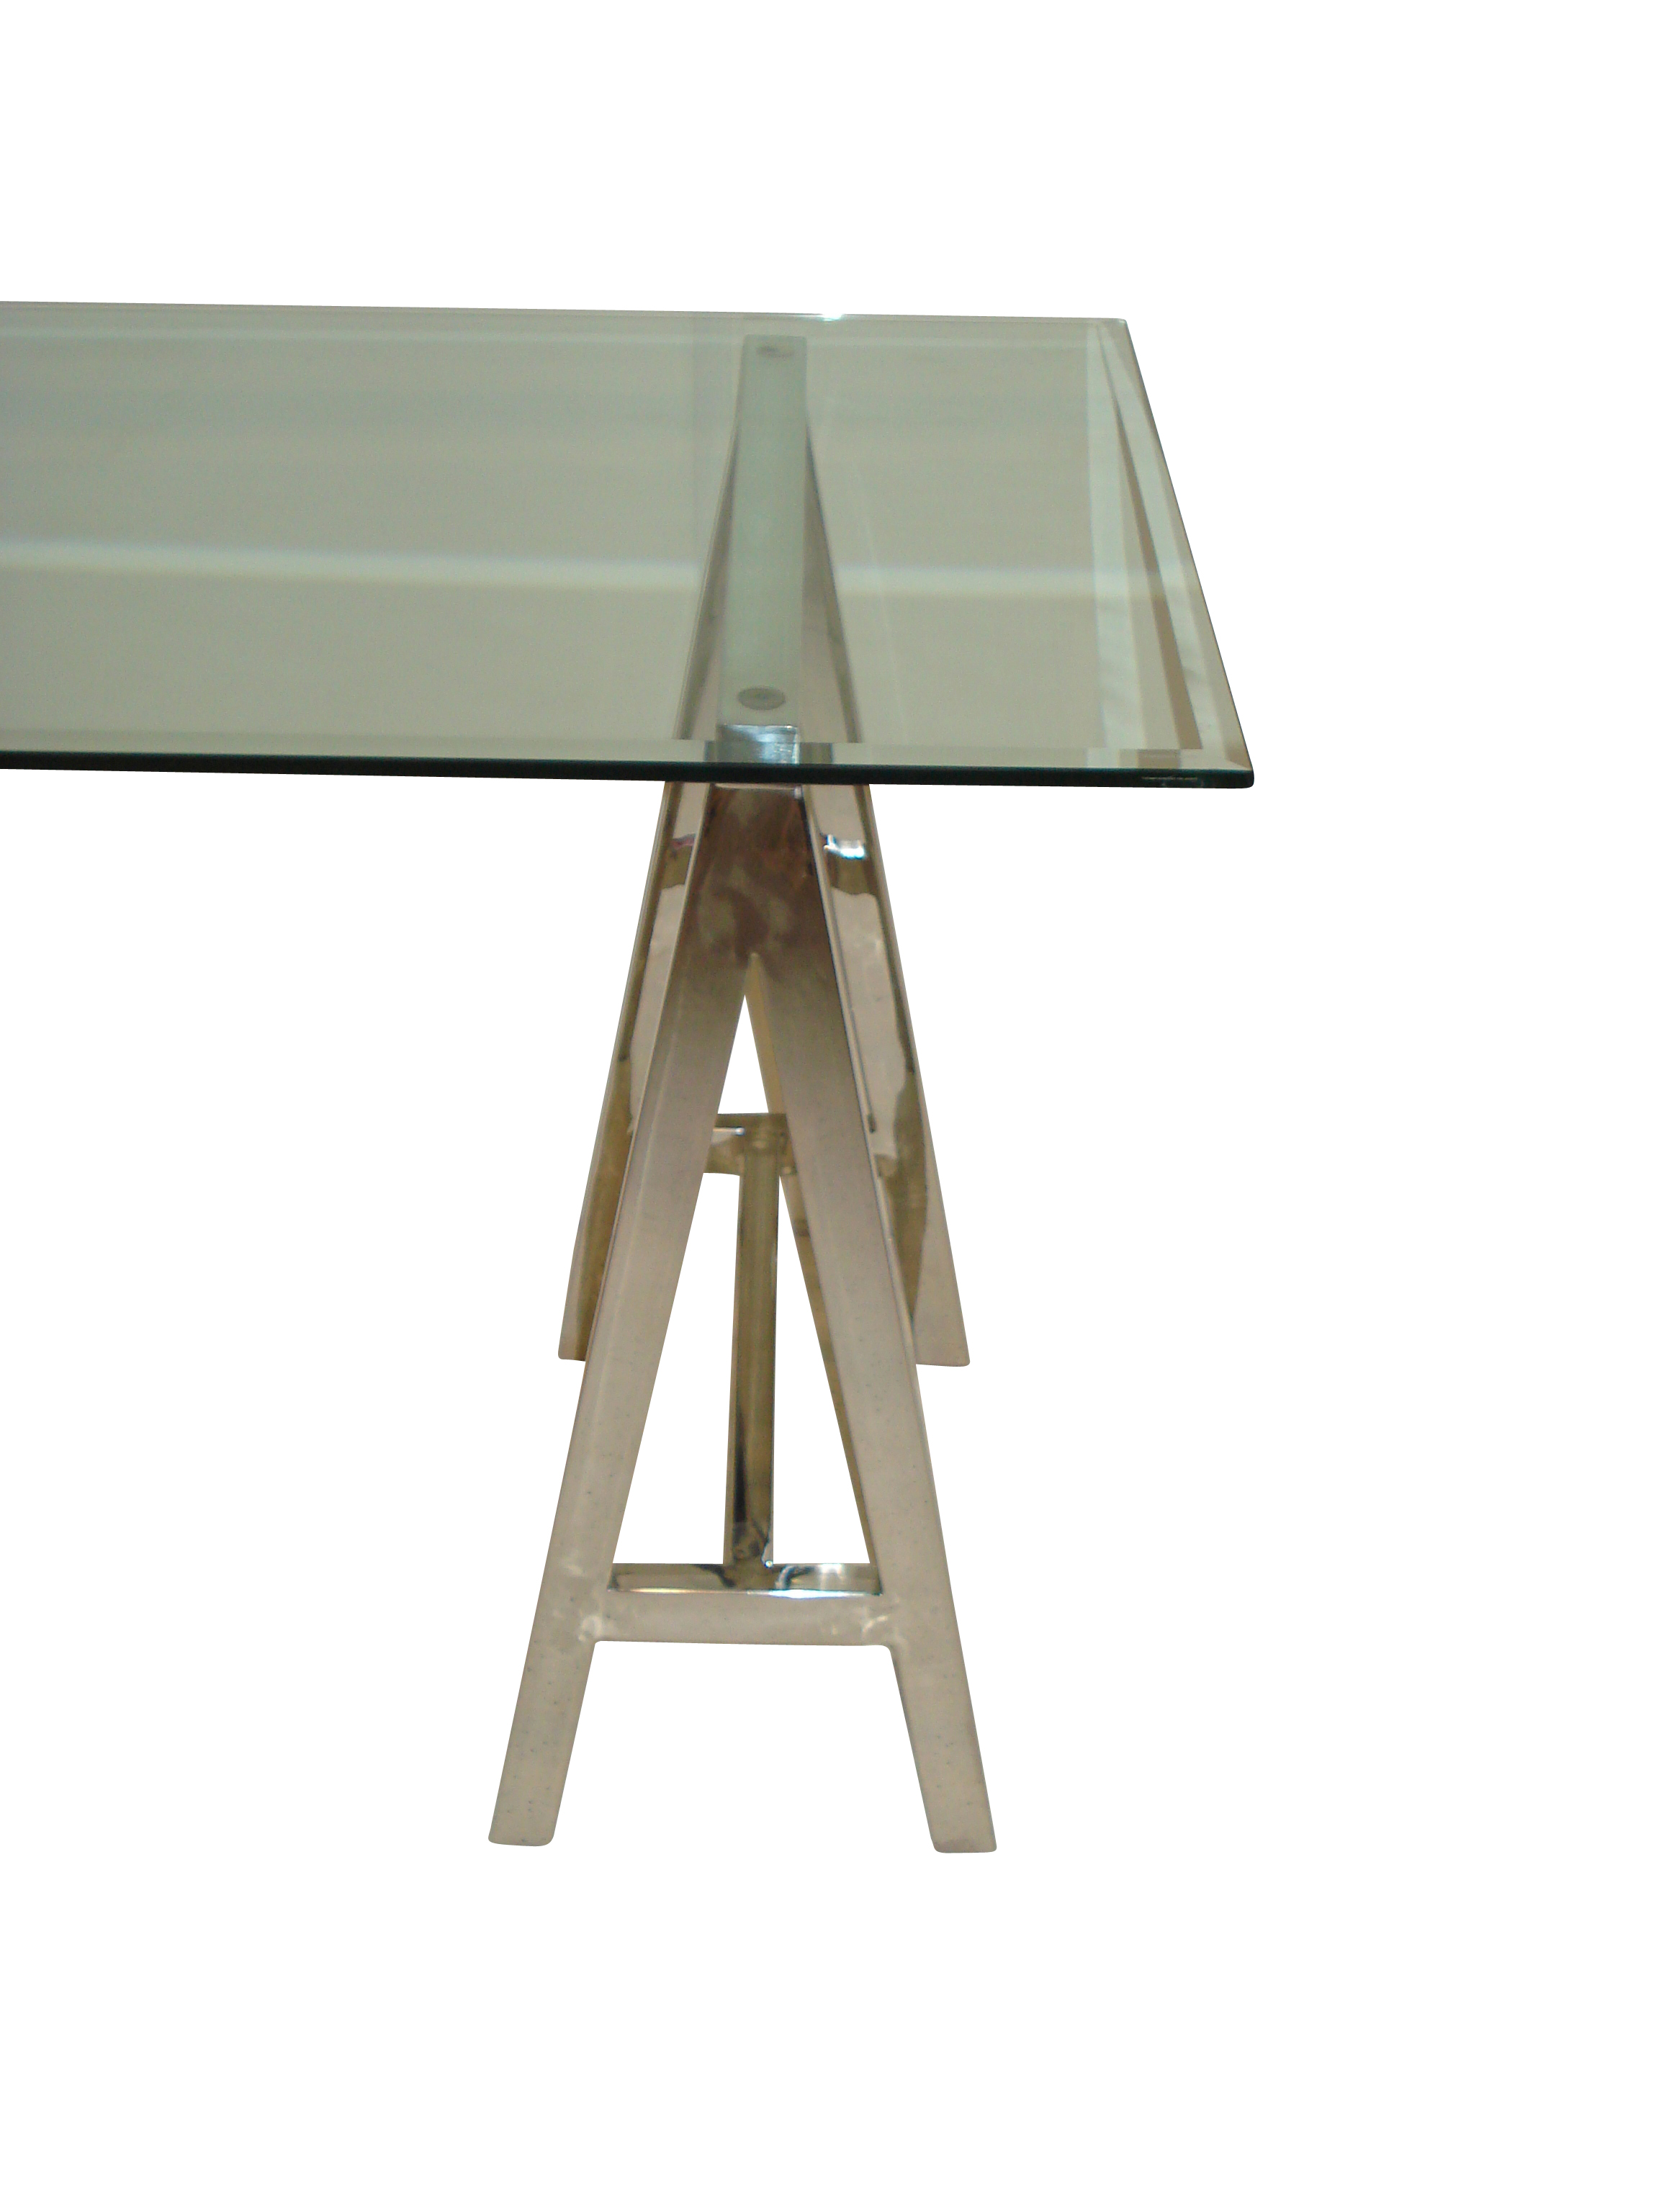 Stainless Steal Trestle Table Leg